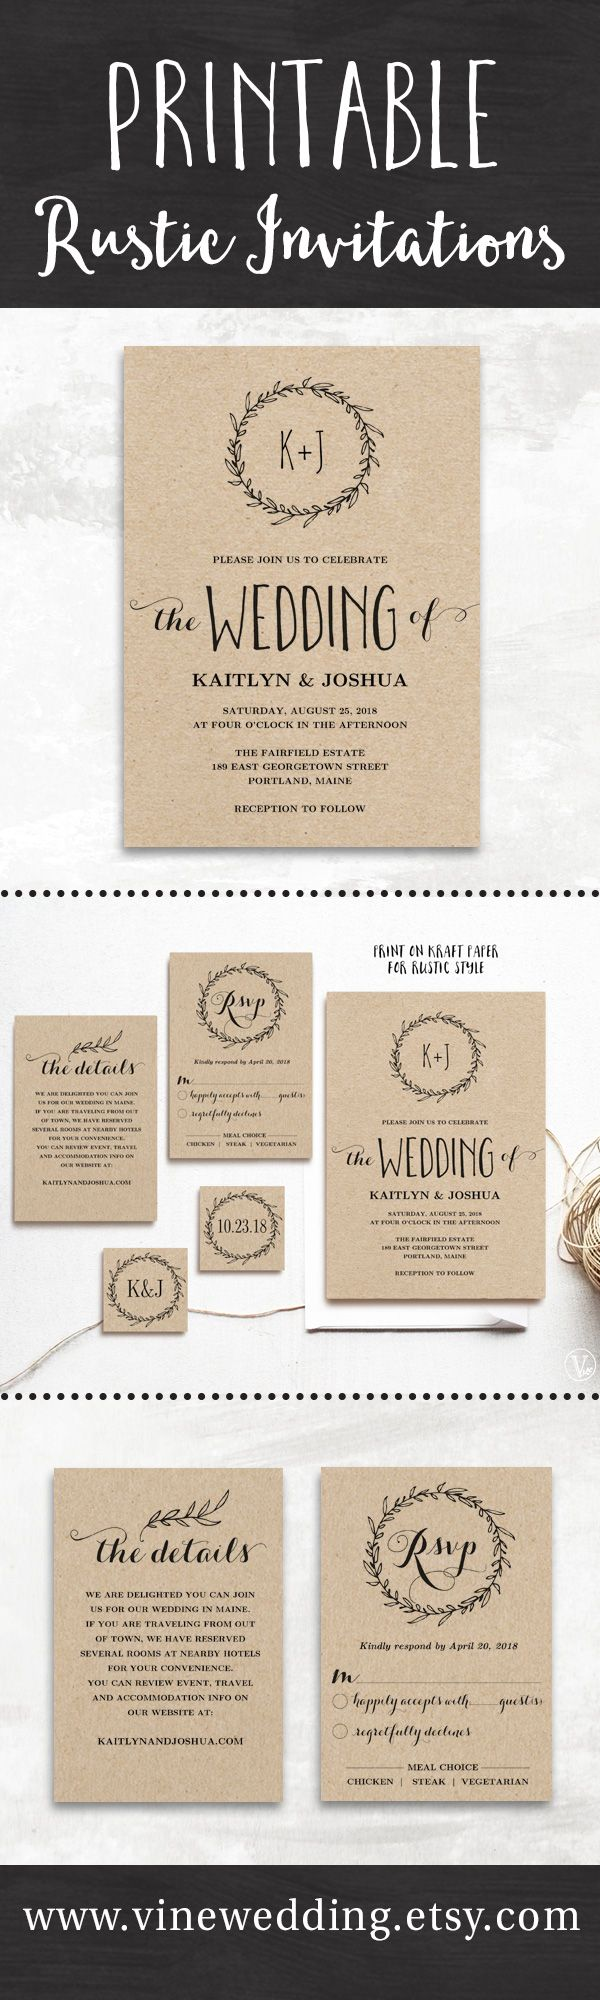 17 best Invites/Order of service images on Pinterest | Weddings ...